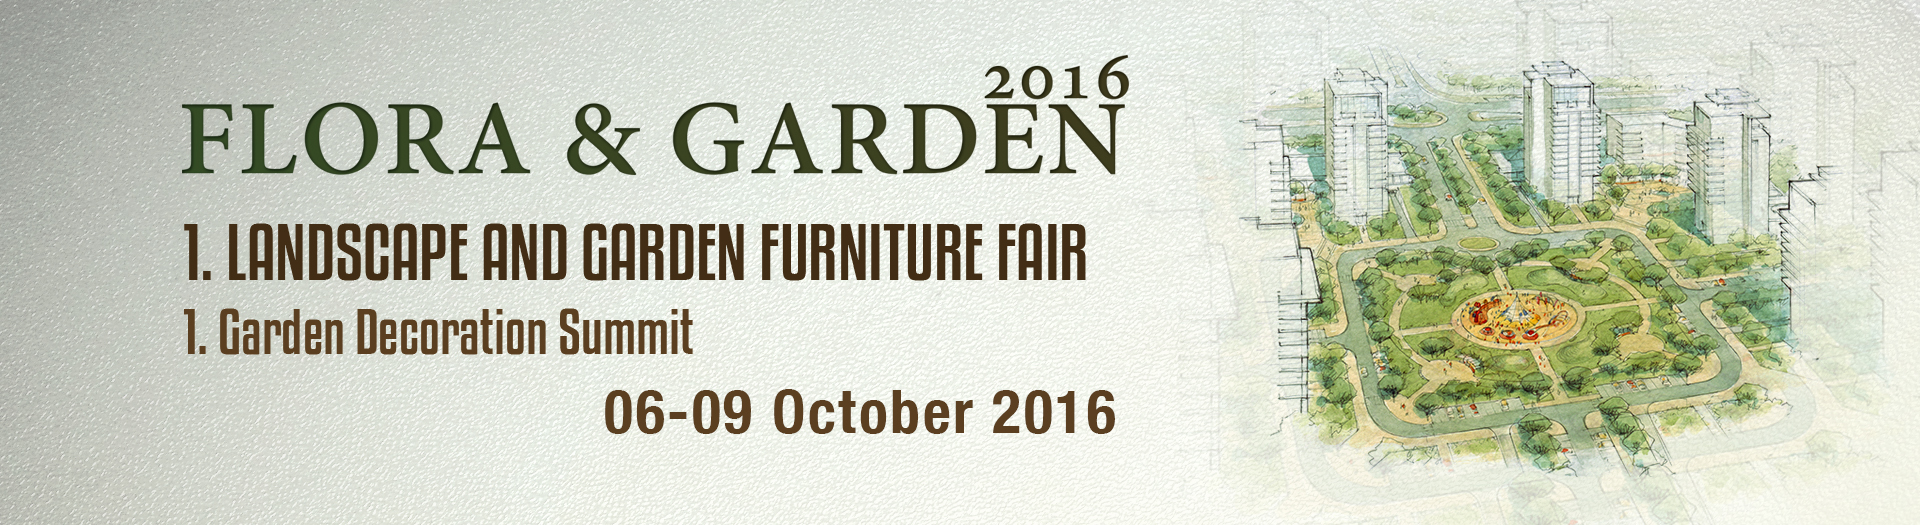 Flora Garden 2016 1. Landscaping And Home Garden Furniture Fair